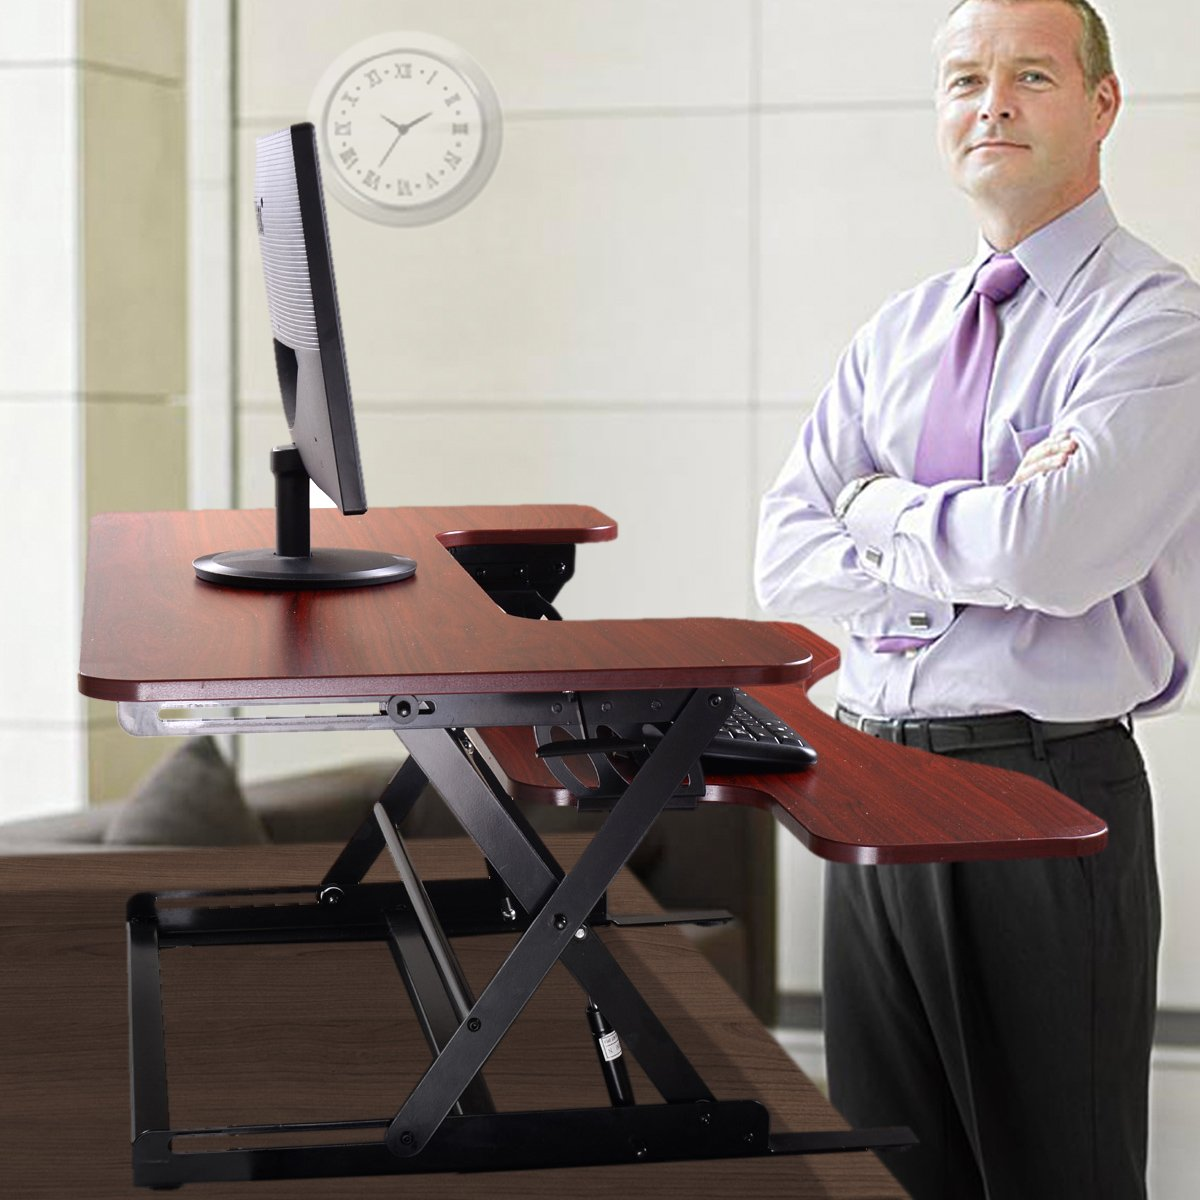 """JAXPETY Standing Desk - the DeskRiser - 36"""" Wide Adjustable Height Sit Stand Up Desk with Retractable Keyboard Tray supports 50 Lbs Heavy Duty - Fits Dual Monitors"""